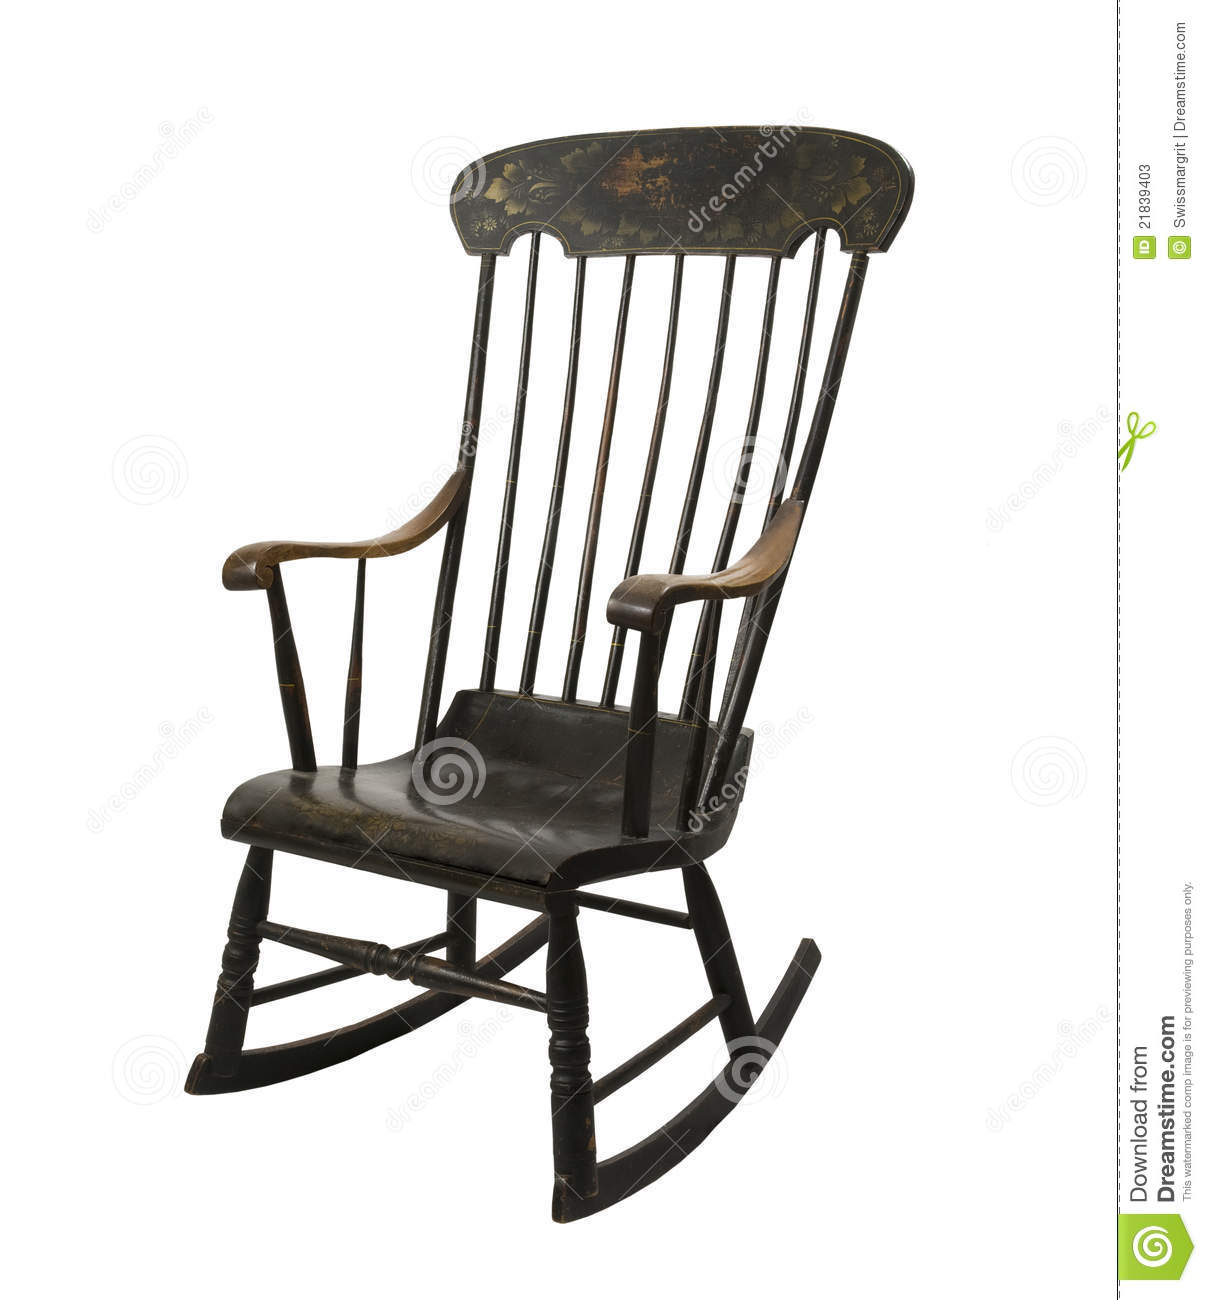 handmade rocking chairs power wheelchair accessories bags antique chair stock image 21839403